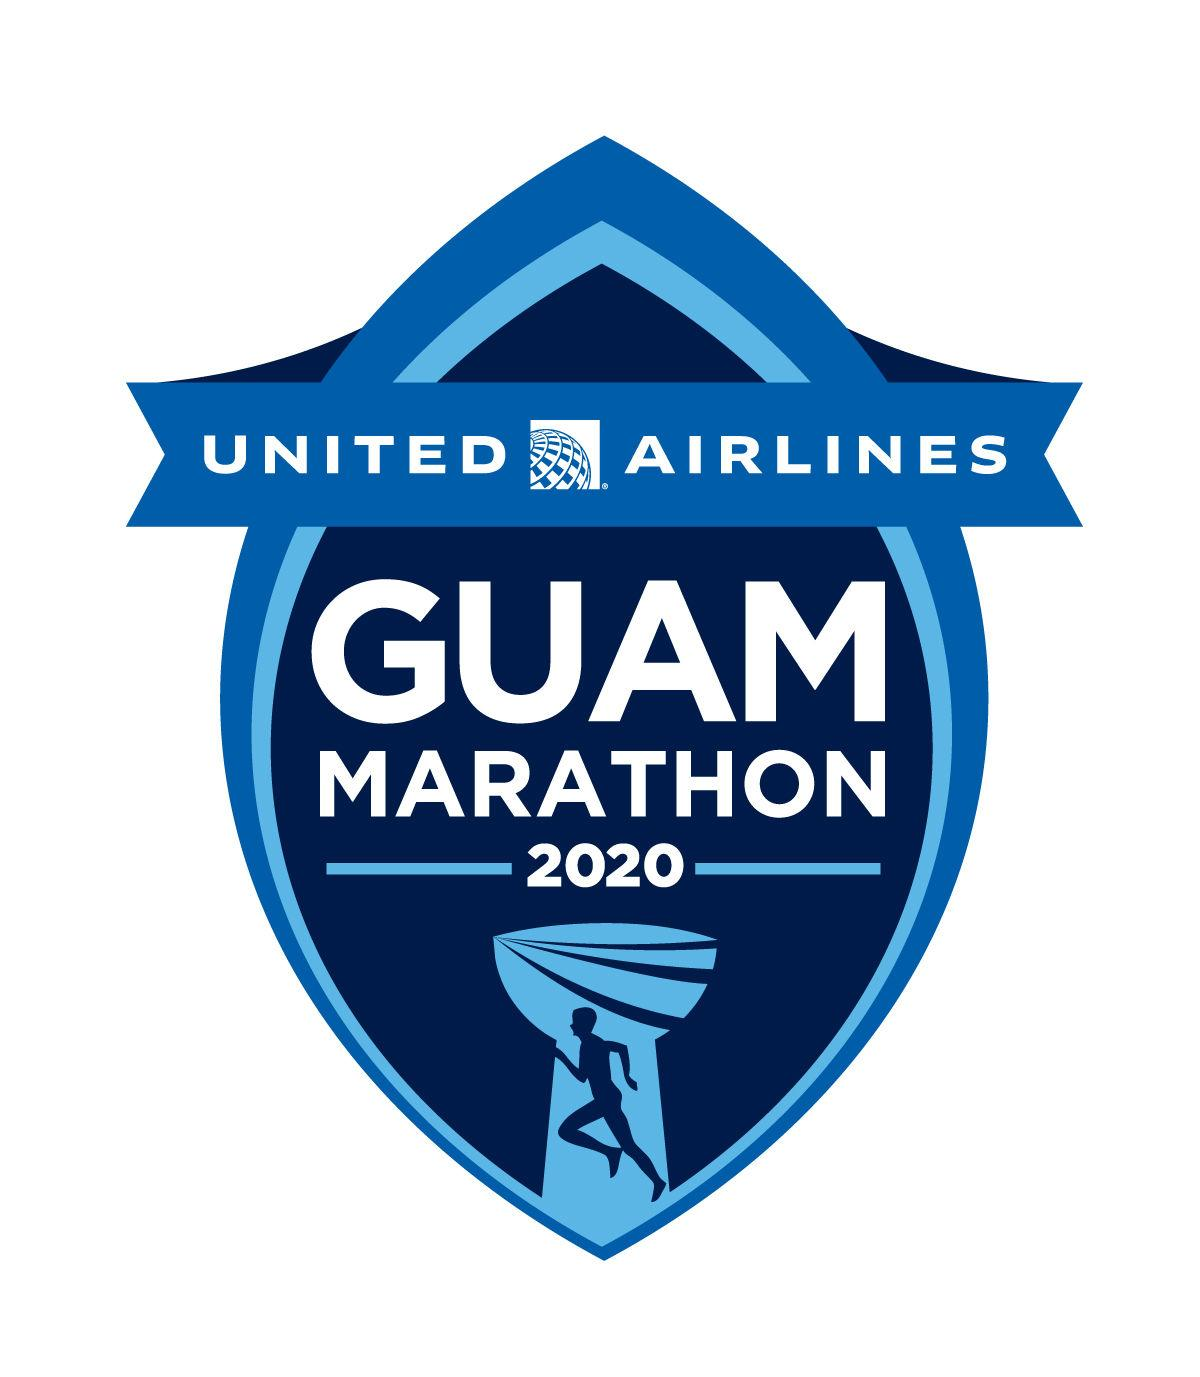 UGM partners with training programs to prepare runners